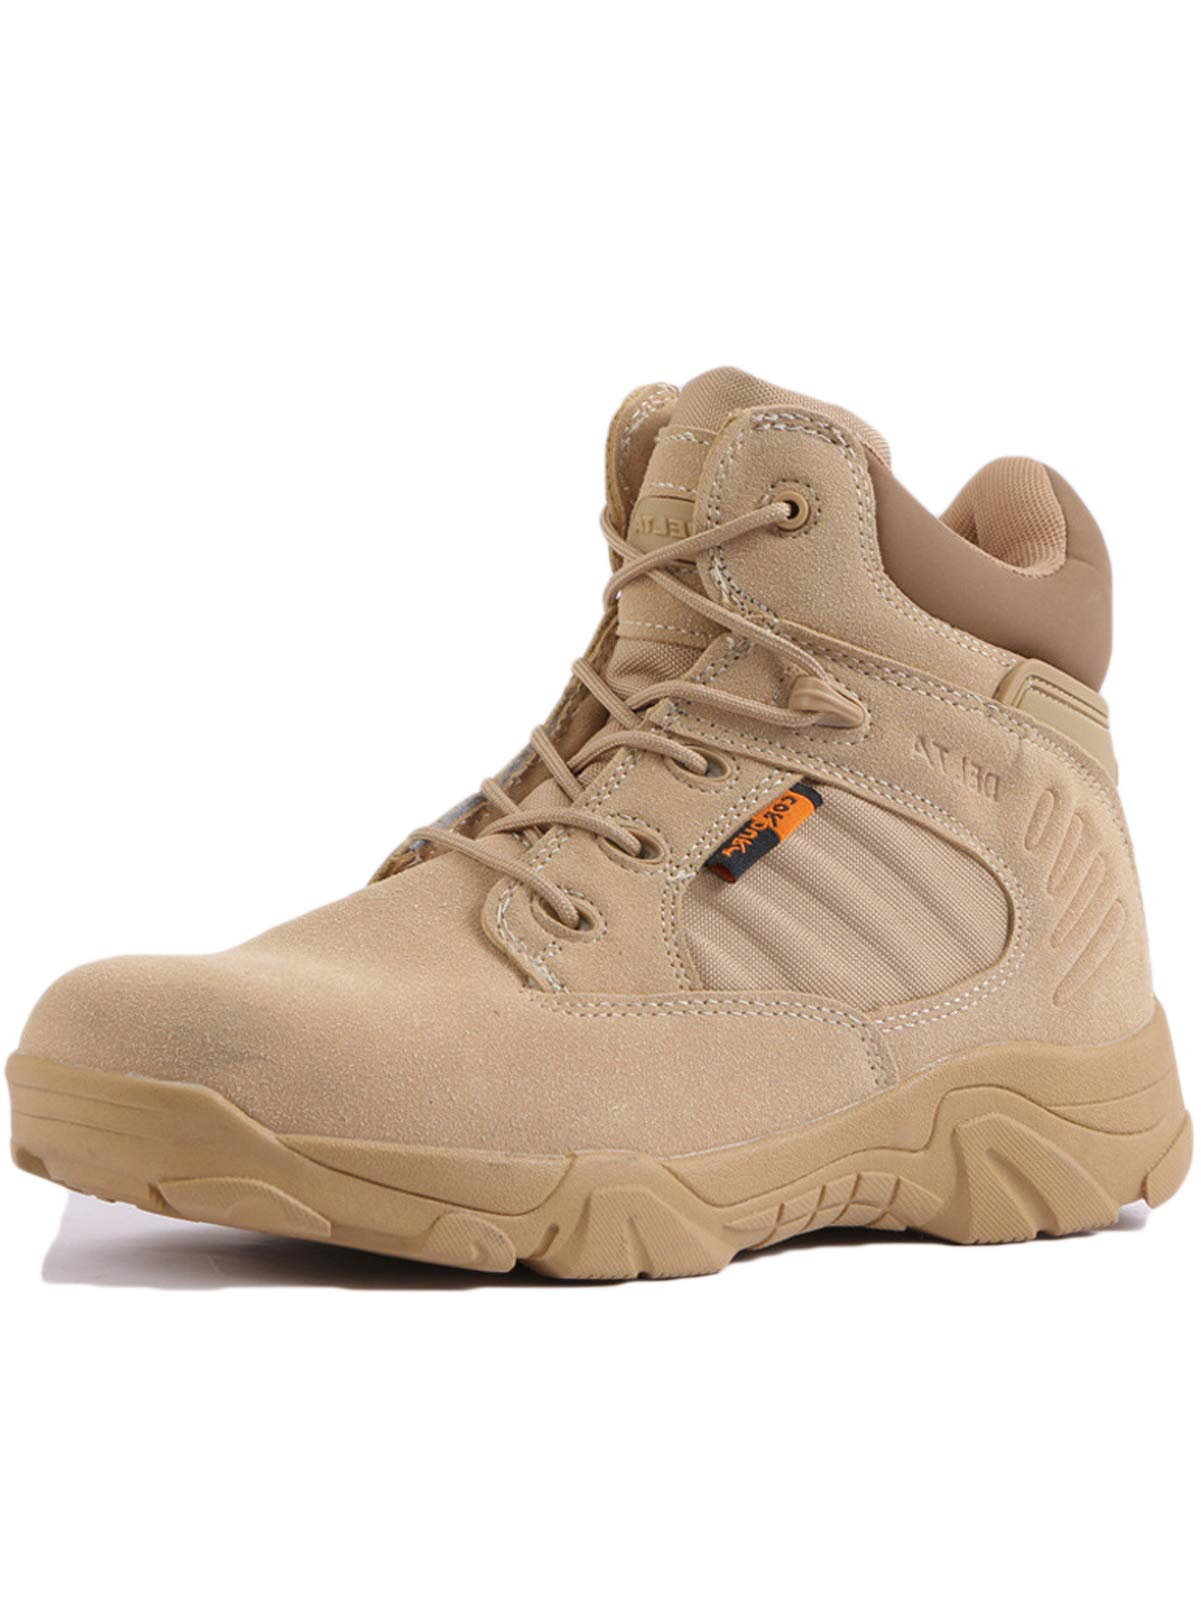 HARGLESMAN Men's Tactical Boots 6 Inches Combat Military Work Desert Leather Boots with Zipper